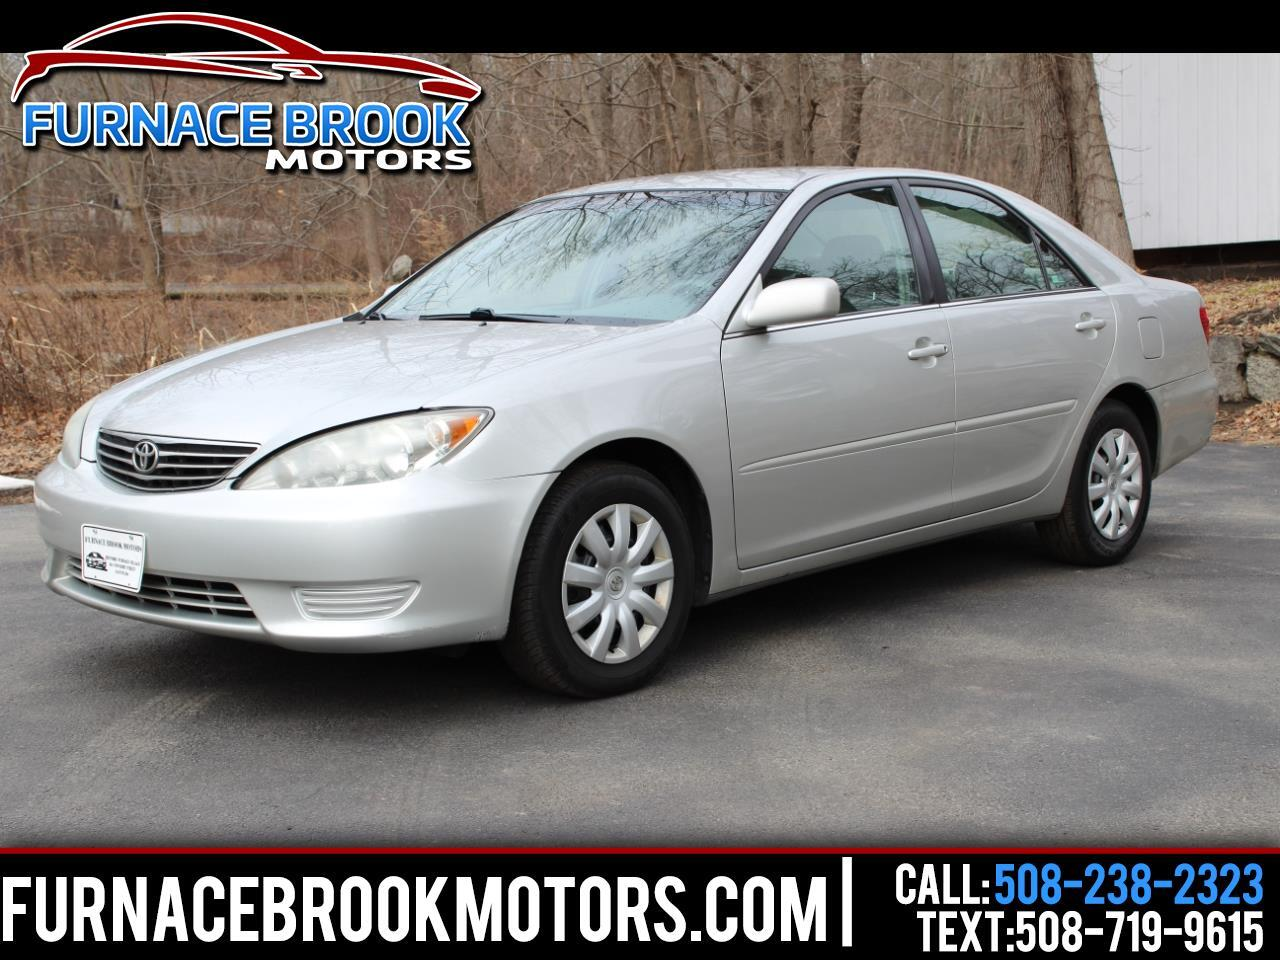 Toyota Camry XLE 2006